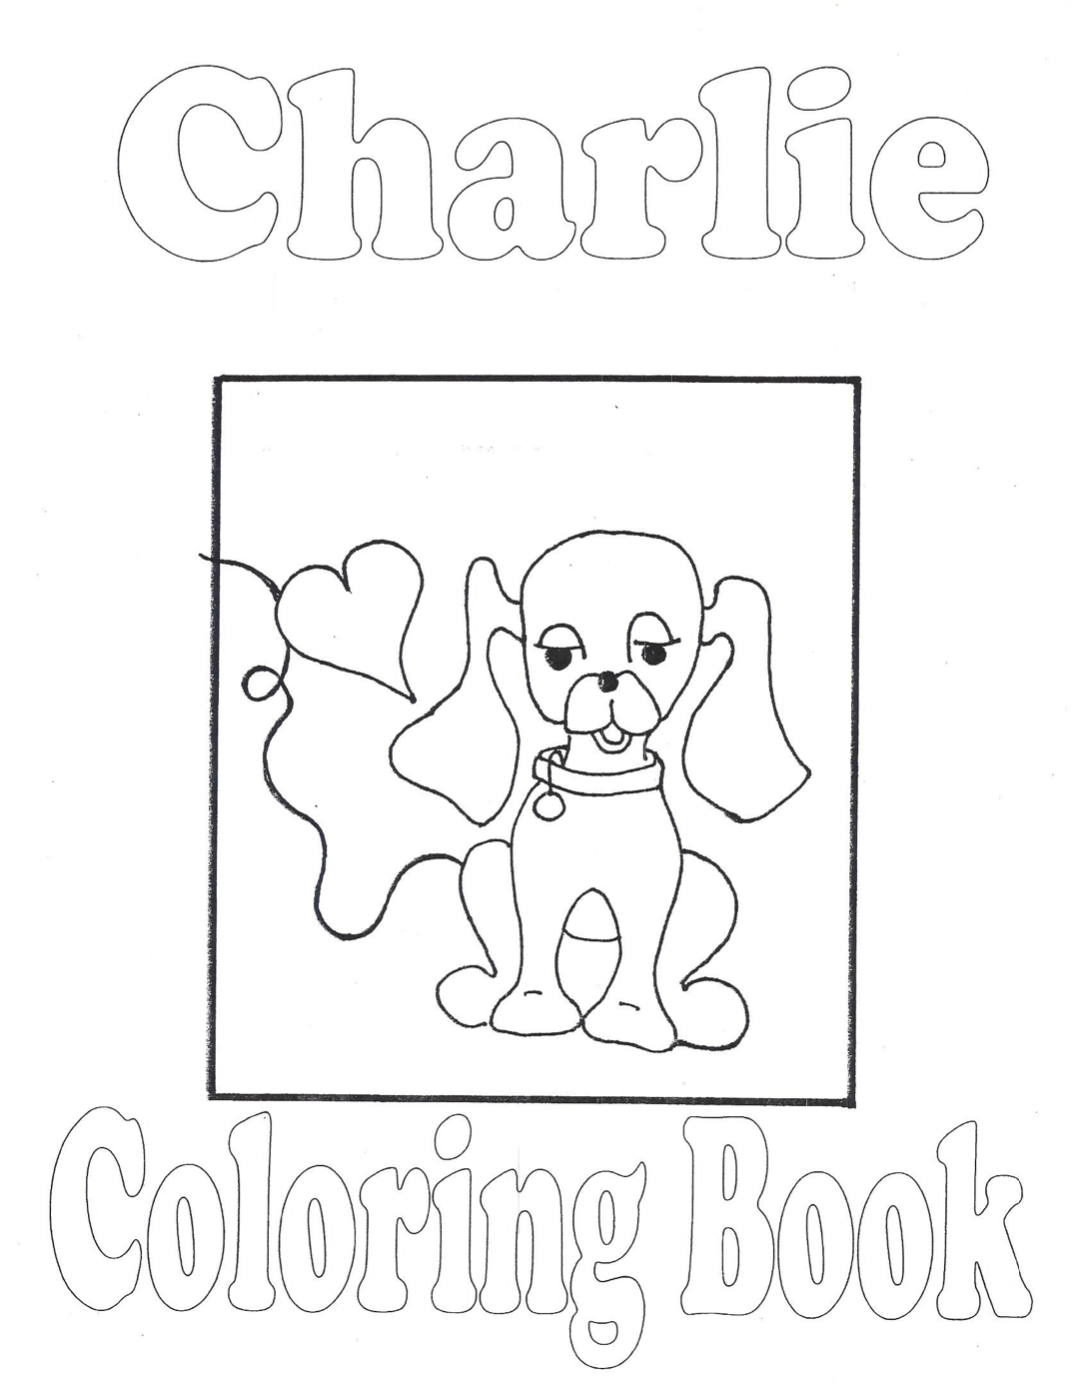 CHARLIE Coloring Book